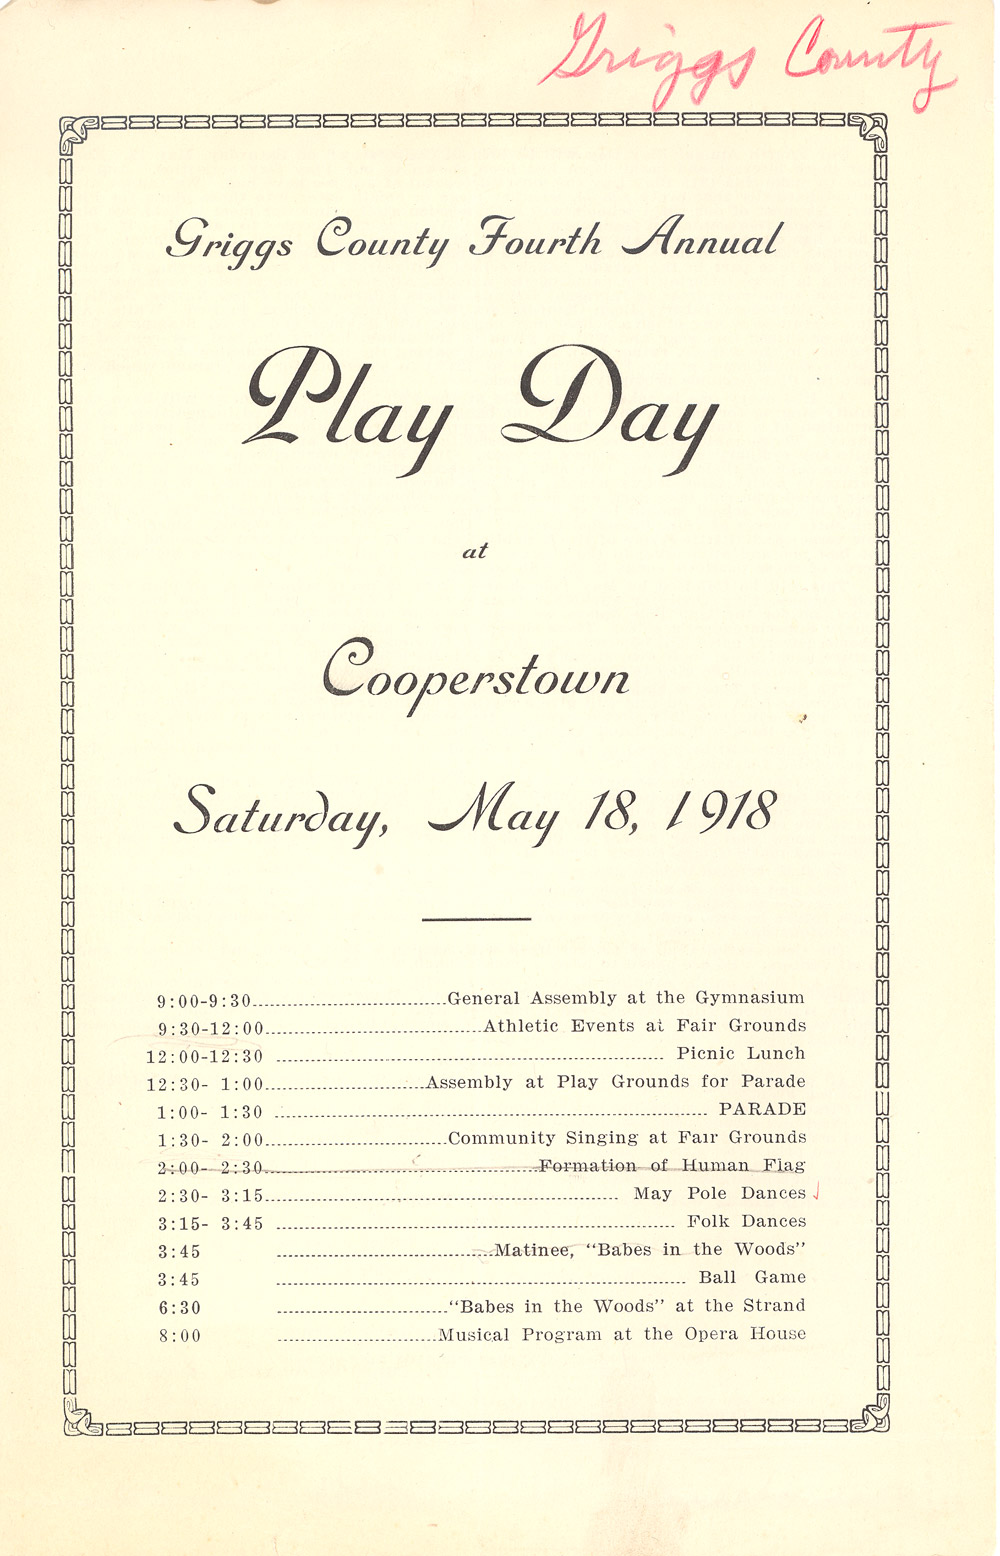 Play Days were popular end-of-the-school year events. Parents often attended Play Day events which were all about having fun. The State Superintendent of Public Instruction did not offer any booklets for Play Day. The events were organized by each school district.